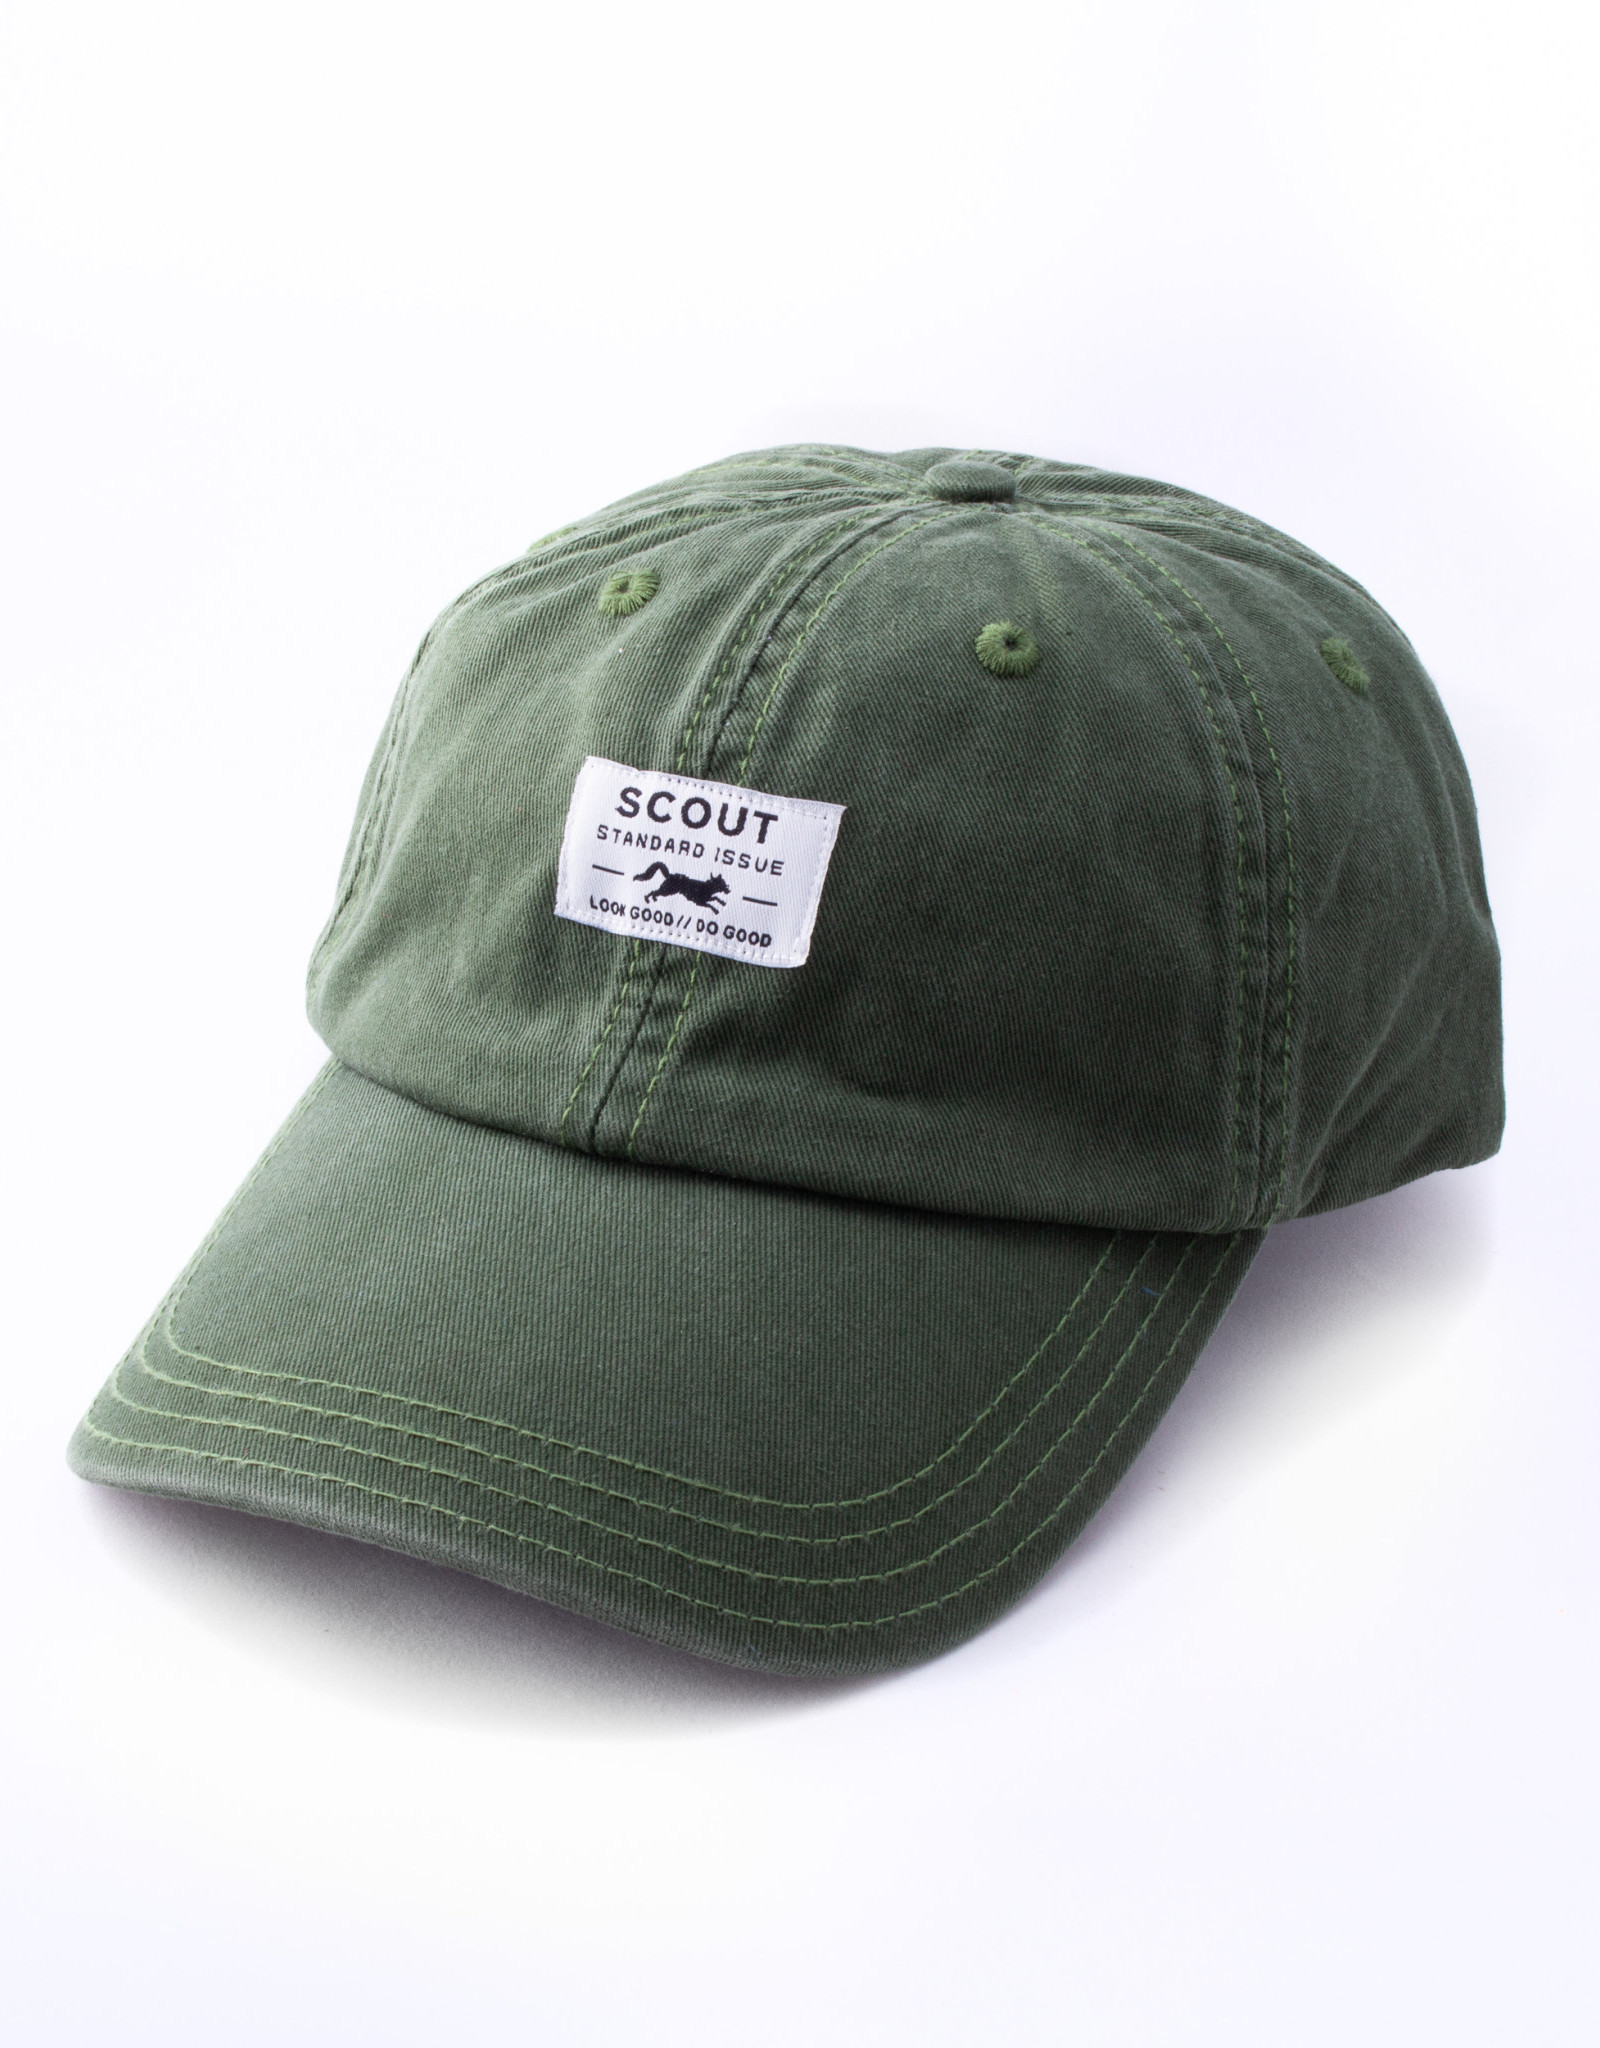 Scout Standard Issue Dad Hat - Loden Green